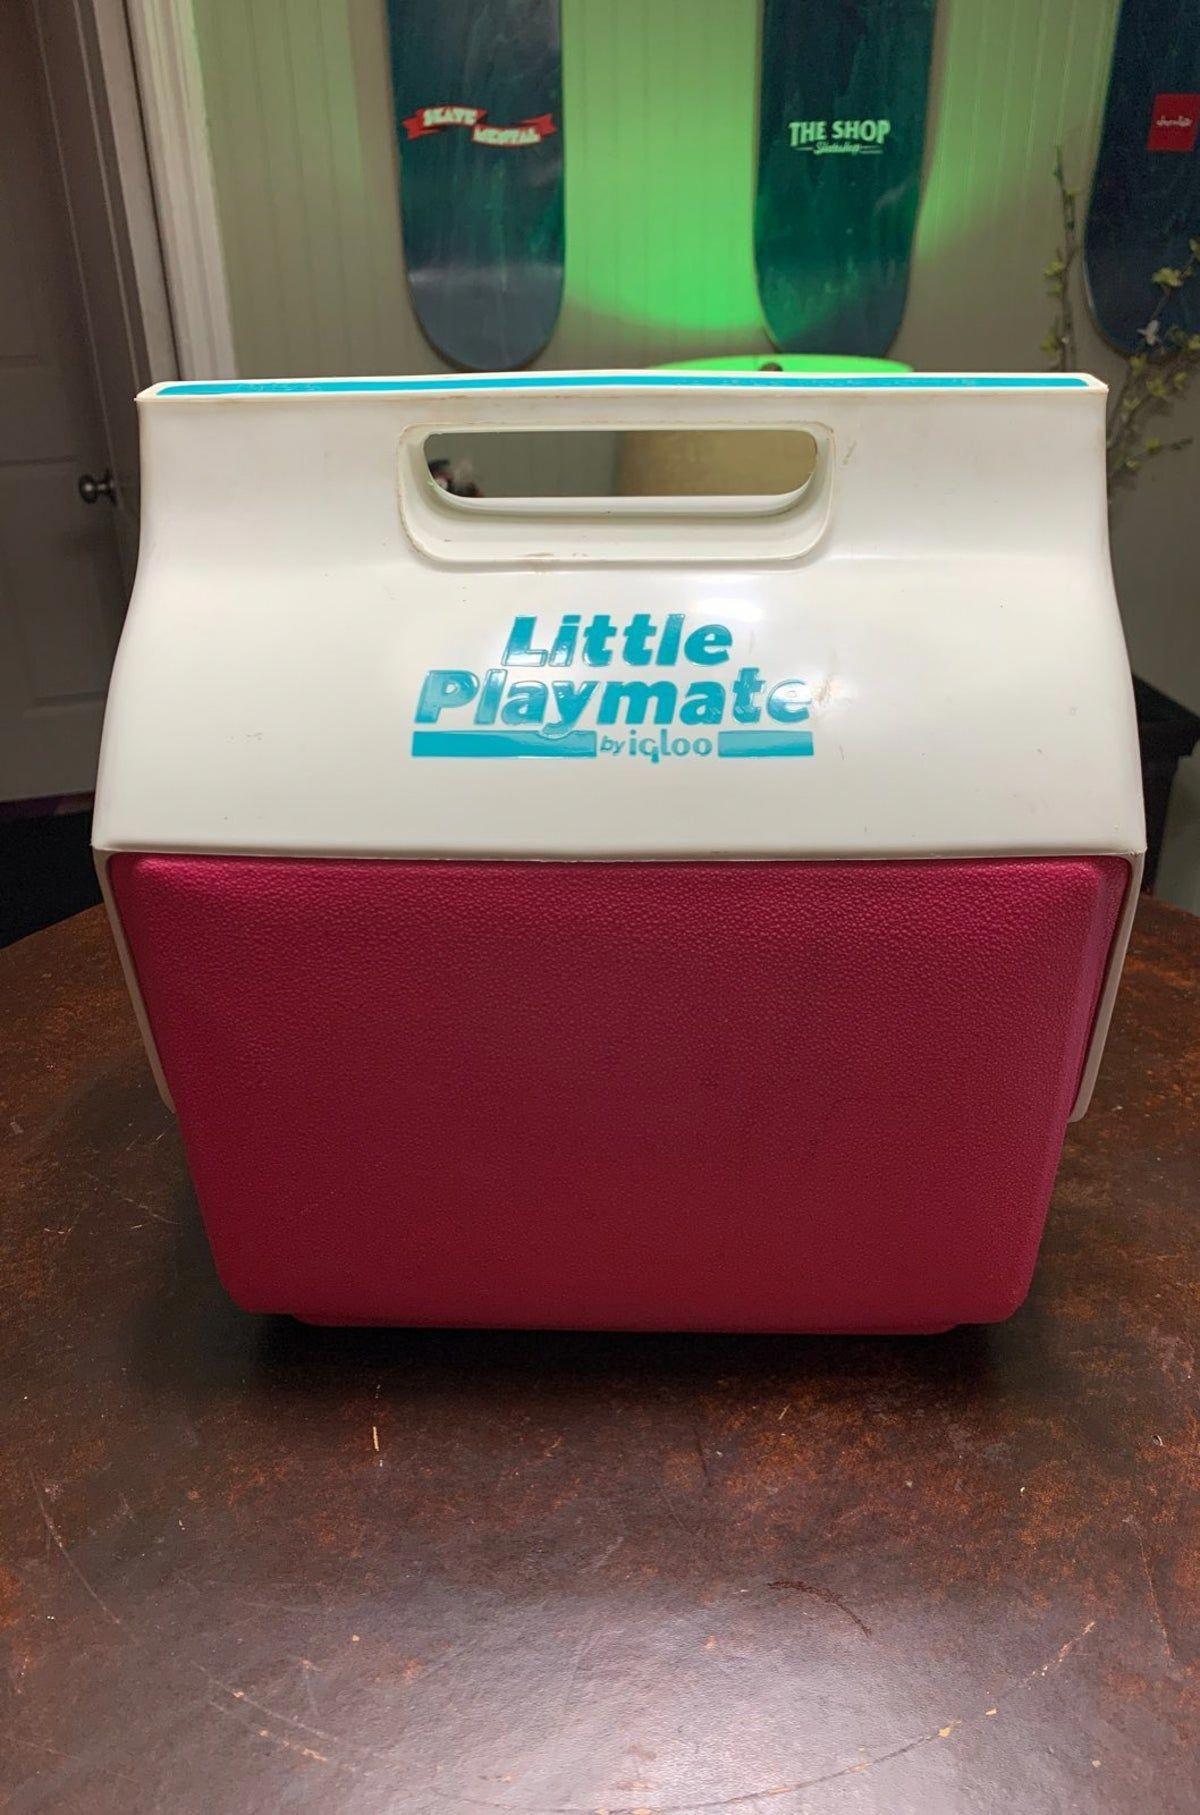 Vintage Little PlayMate By Igloo Cooler in 2020 Igloo